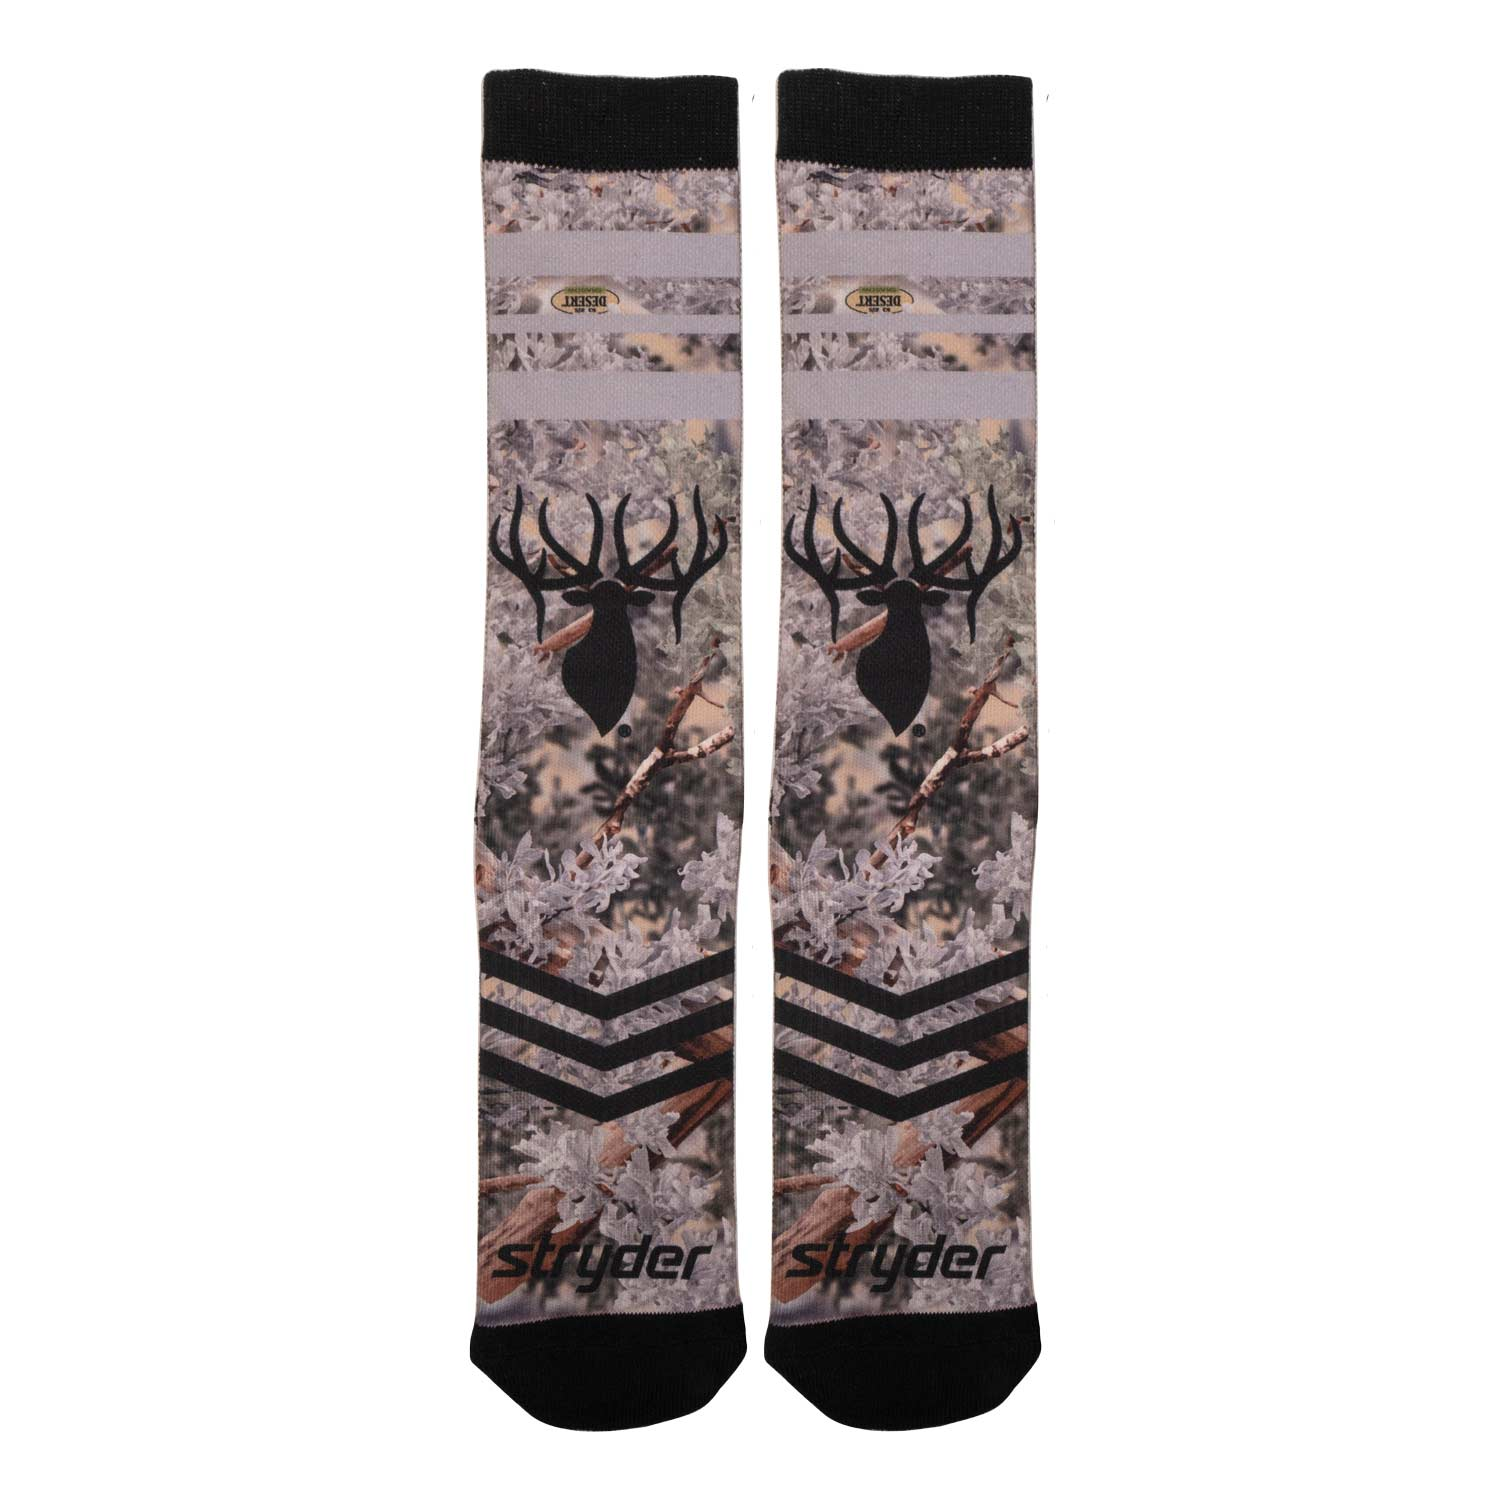 King's Graphic Socks